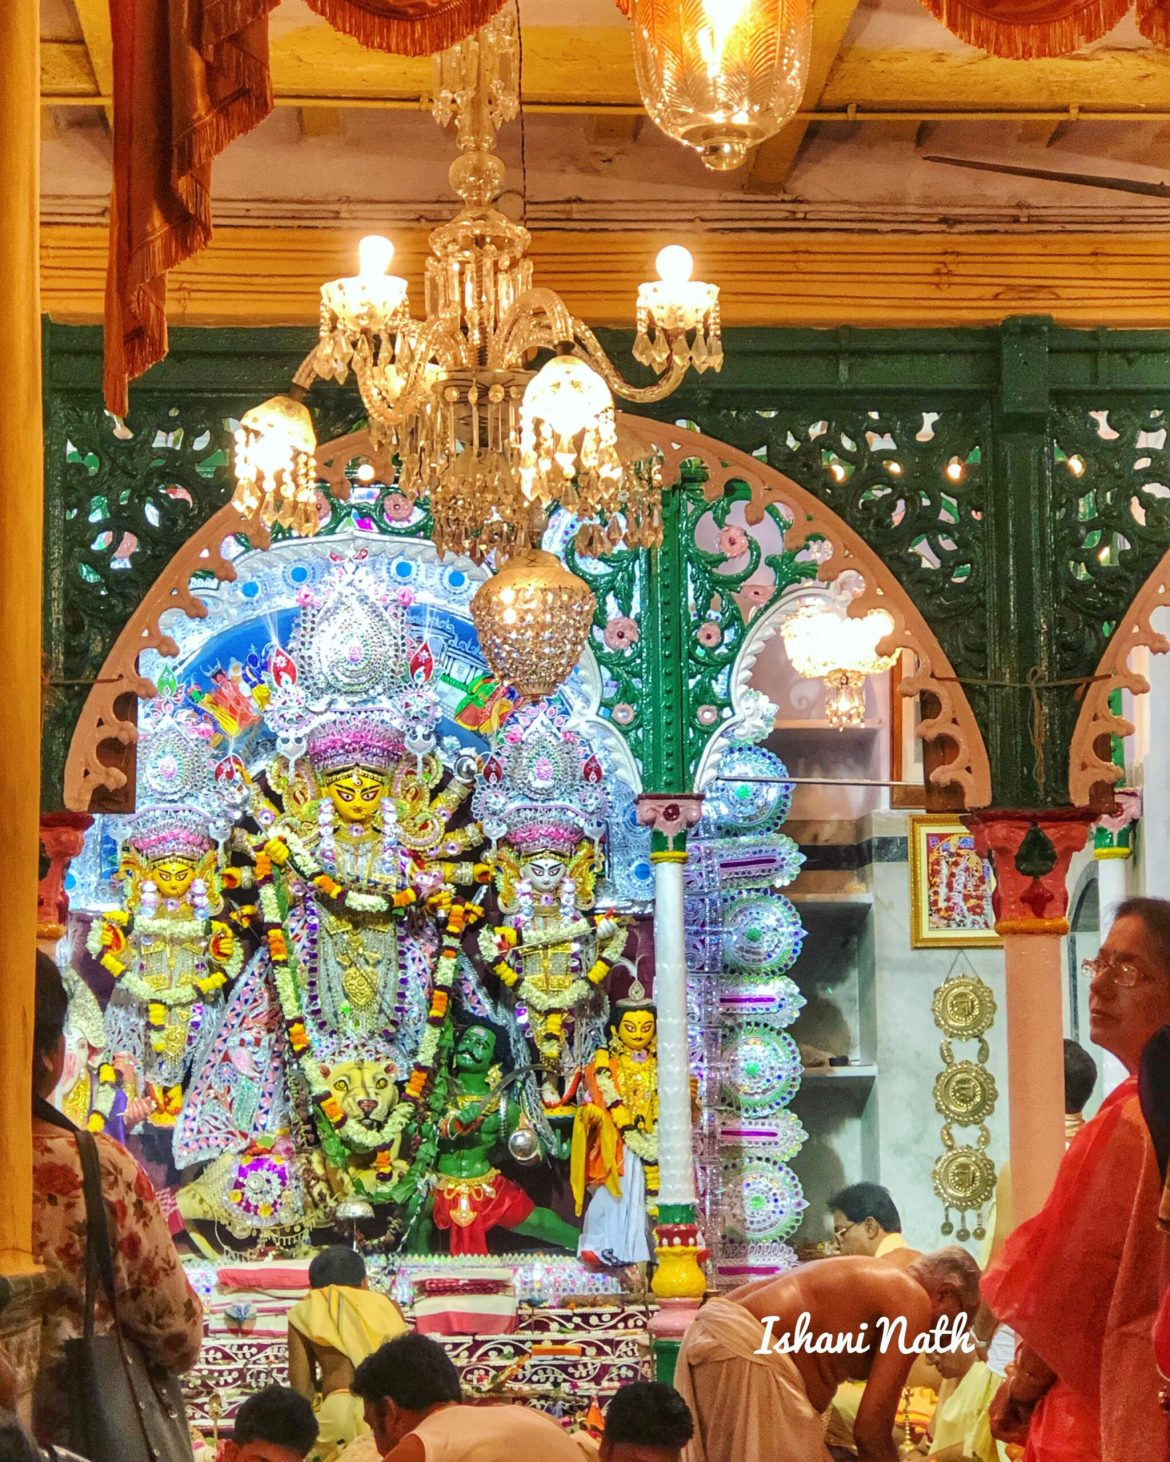 A visit to the Bonedi Barir Durga Puja in Kolkata, India